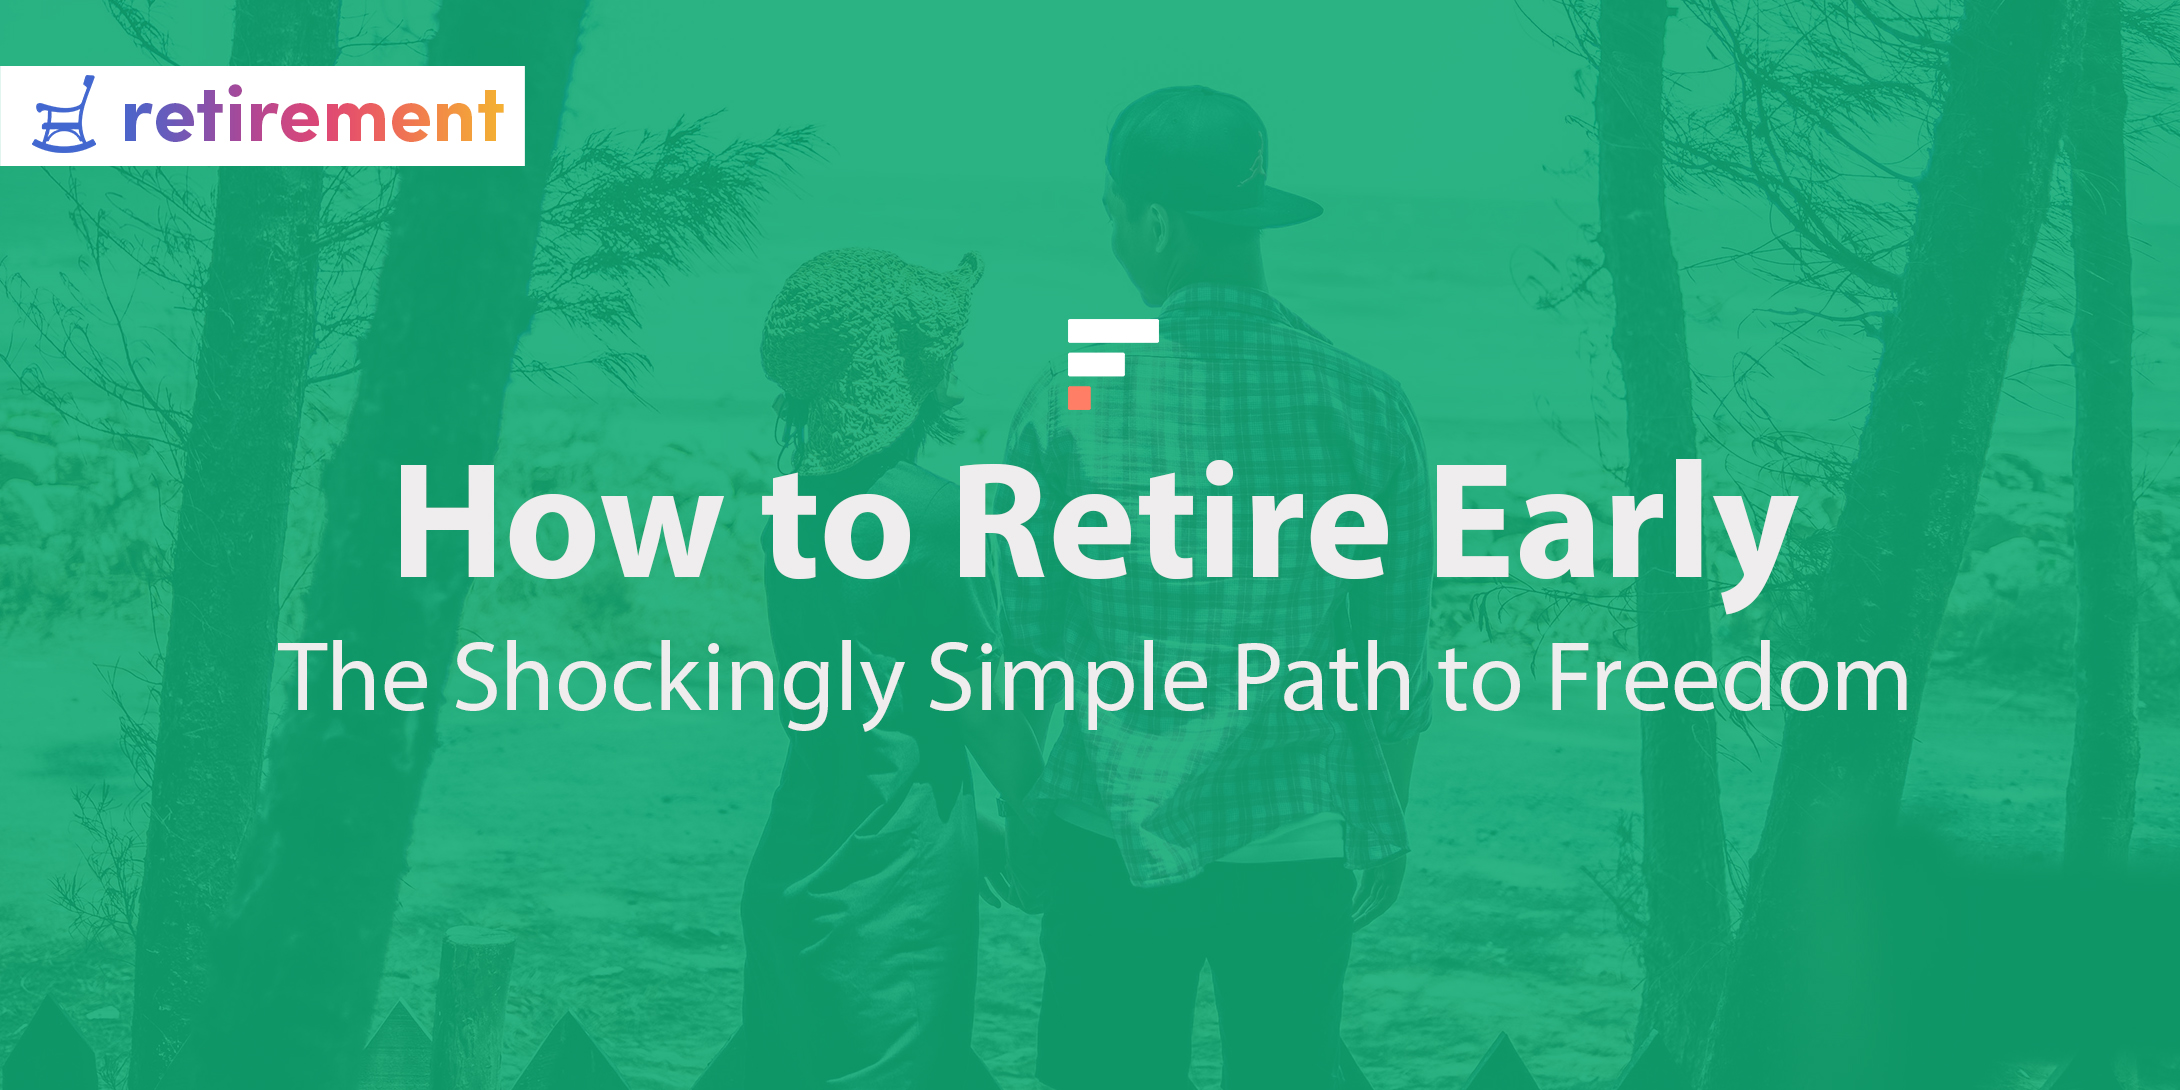 How to Retire Early: The Shockingly Simple Path to Freedom